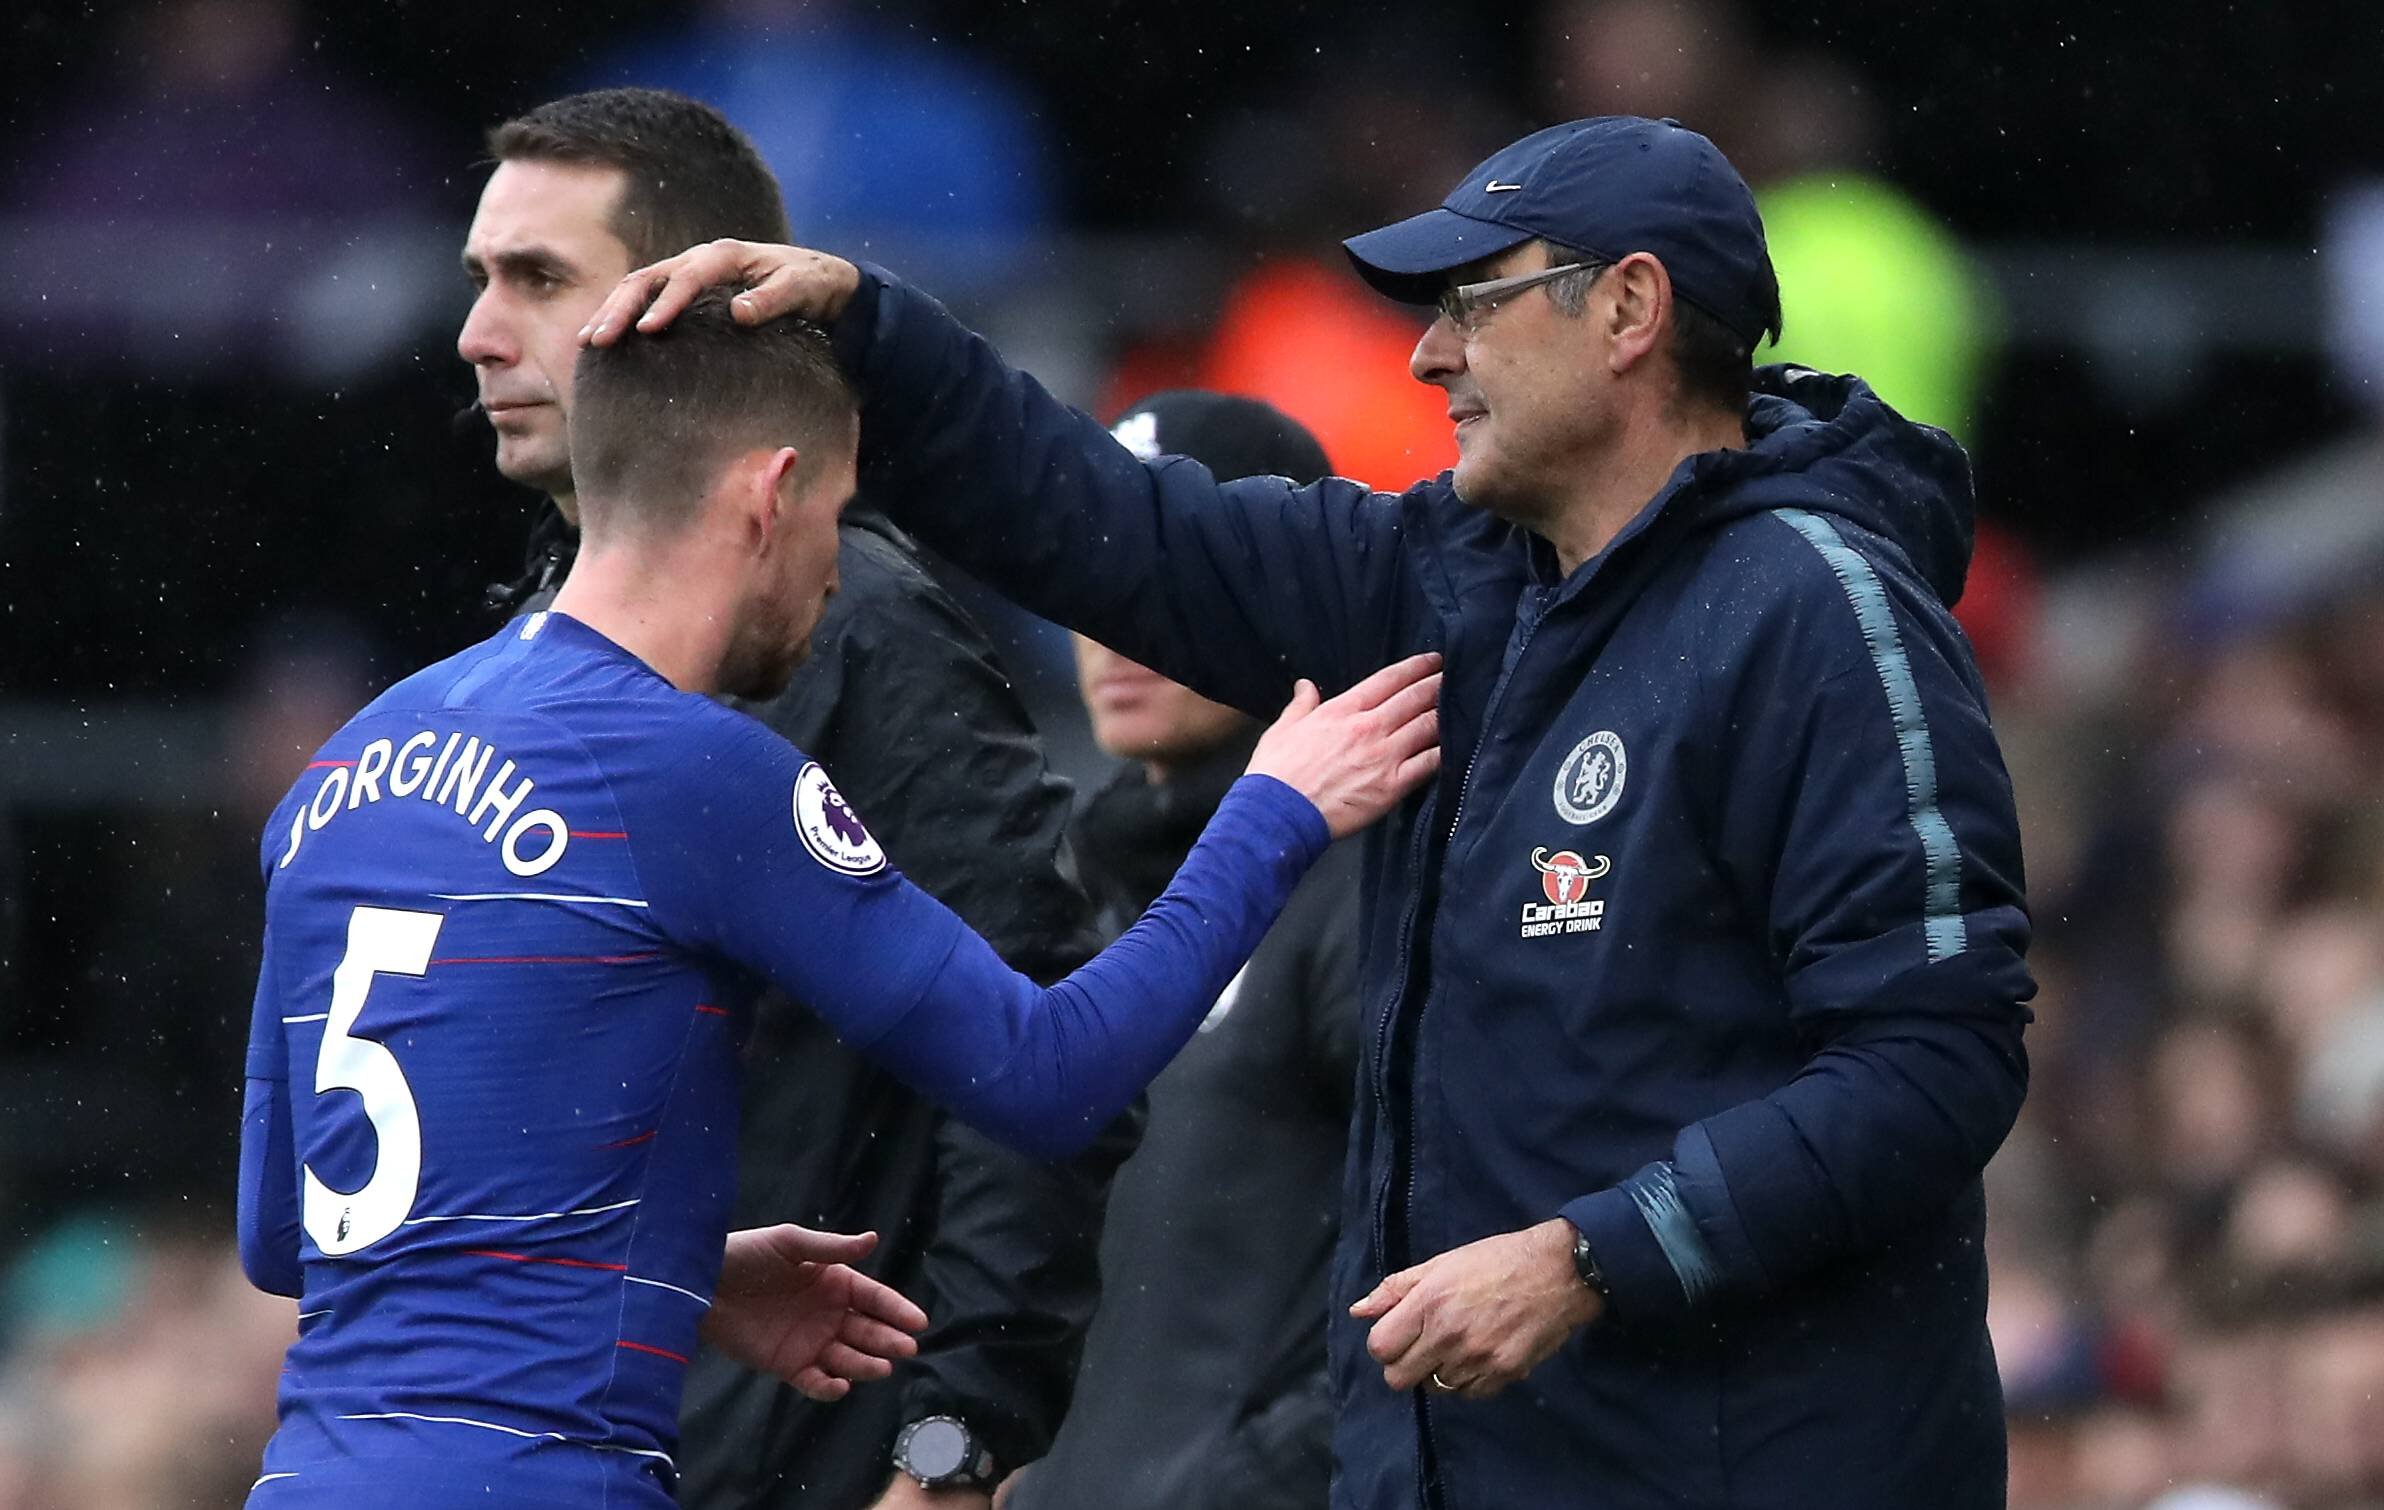 Maurizio Sarri signed Jorginho from Napoli when he joined Chelsea in the summer of 2018. (GETTY Images)